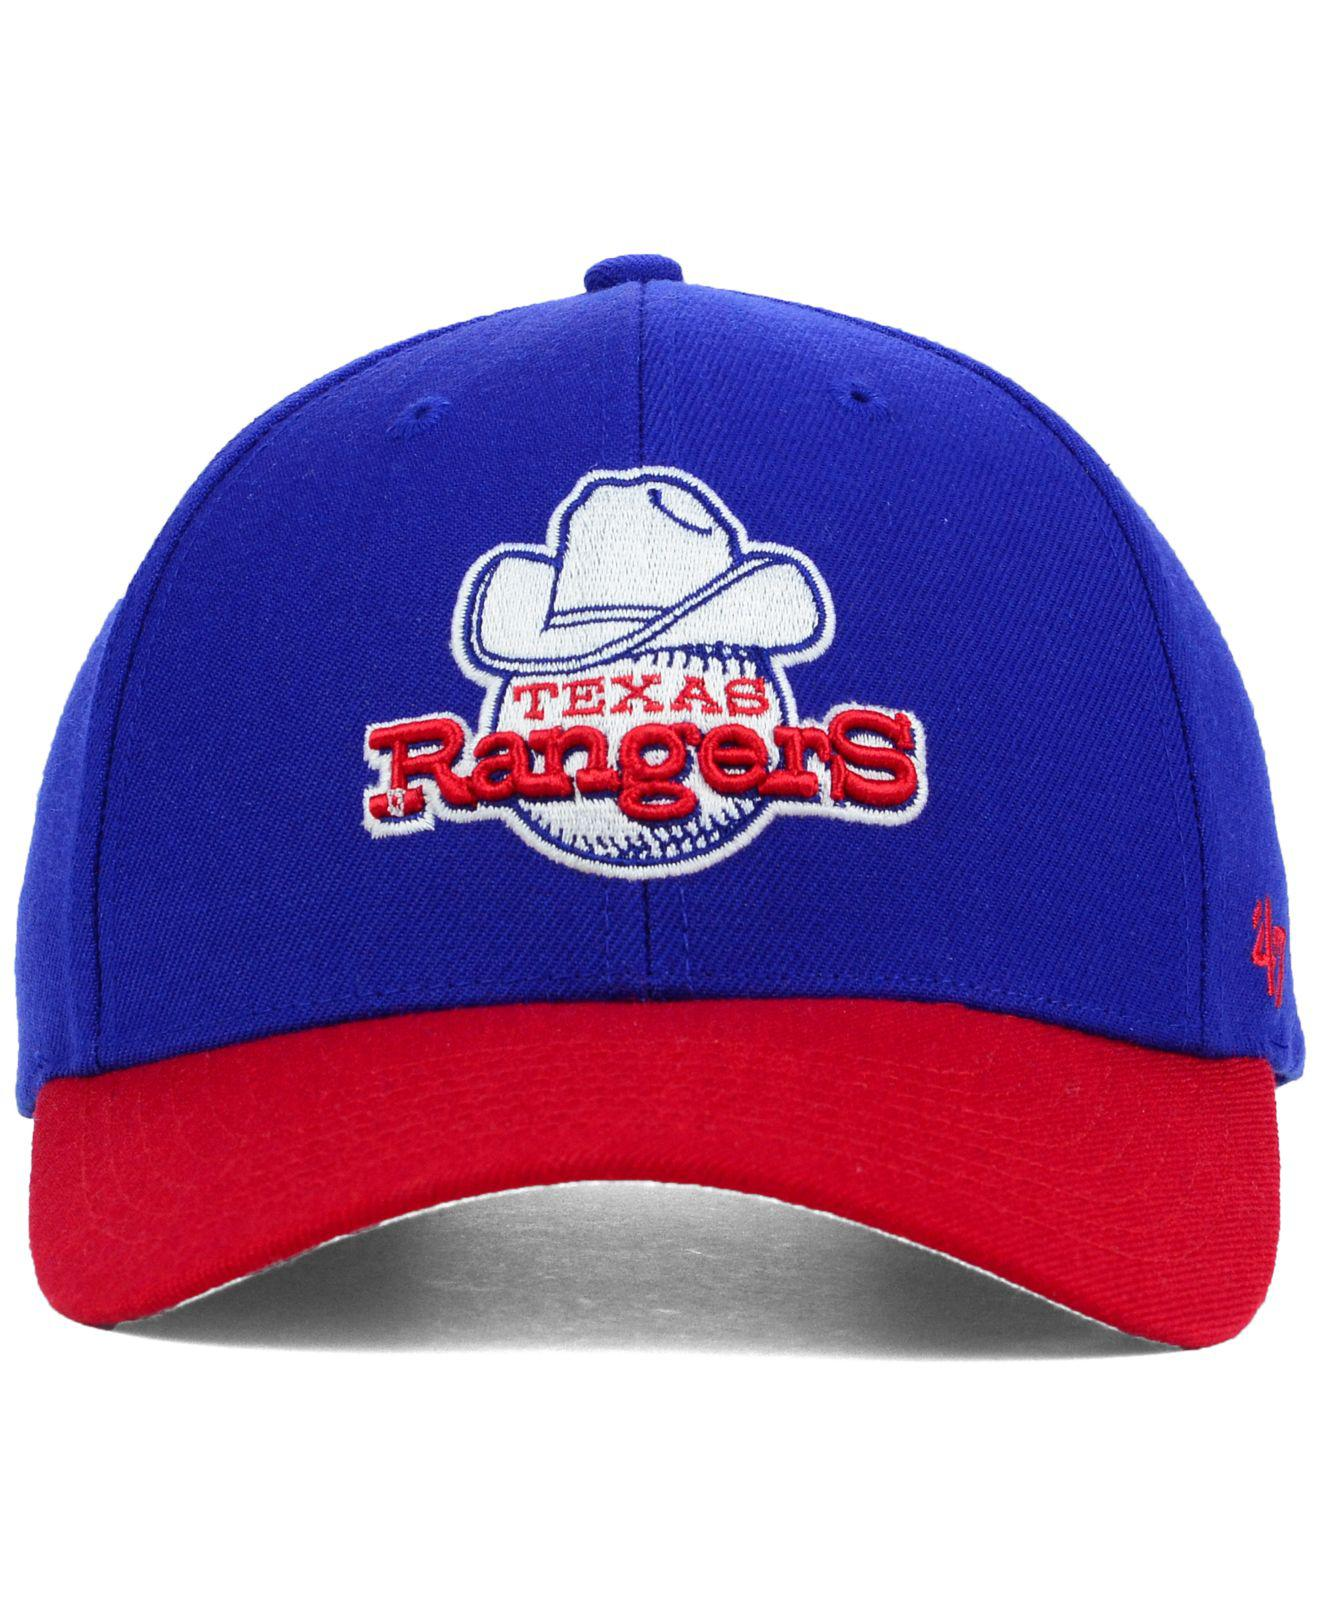 reputable site d056e aa748 Lyst - 47 Brand Texas Rangers Mvp Curved Cap in Red for Men